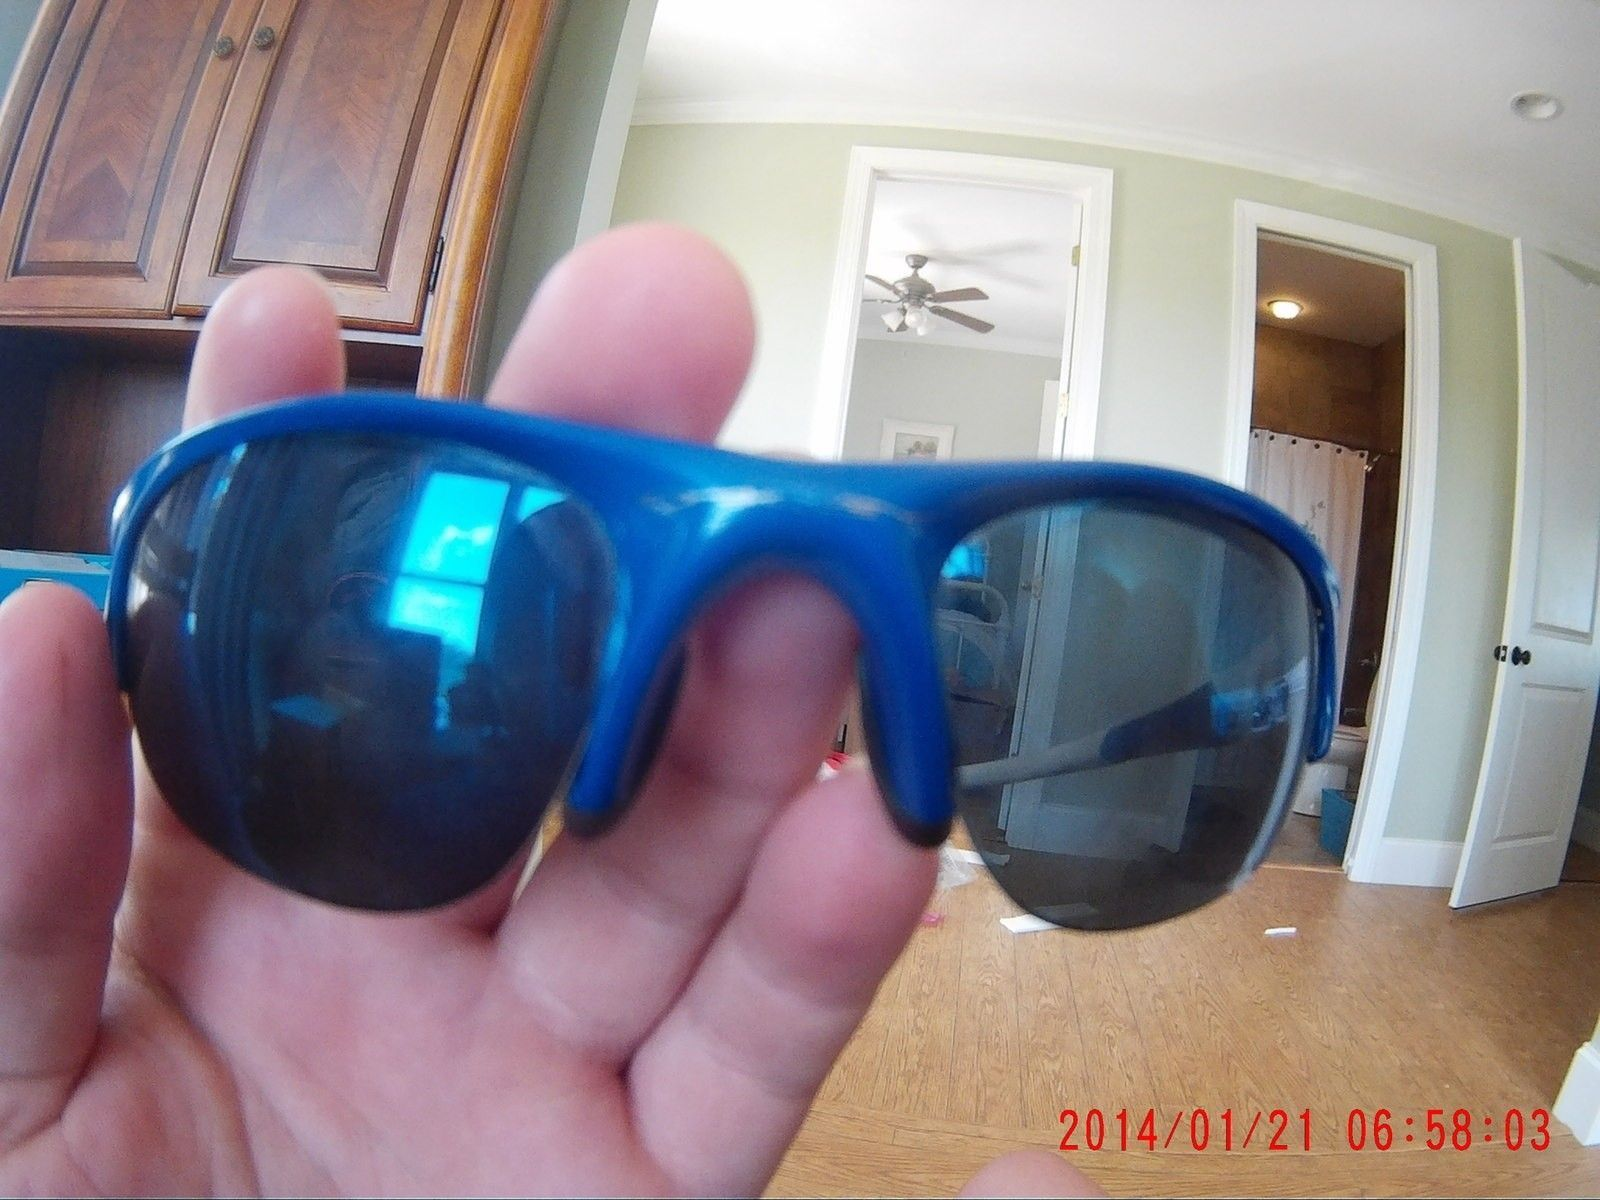 Found at the beach any value? they say oakley??? - 06580001.JPG